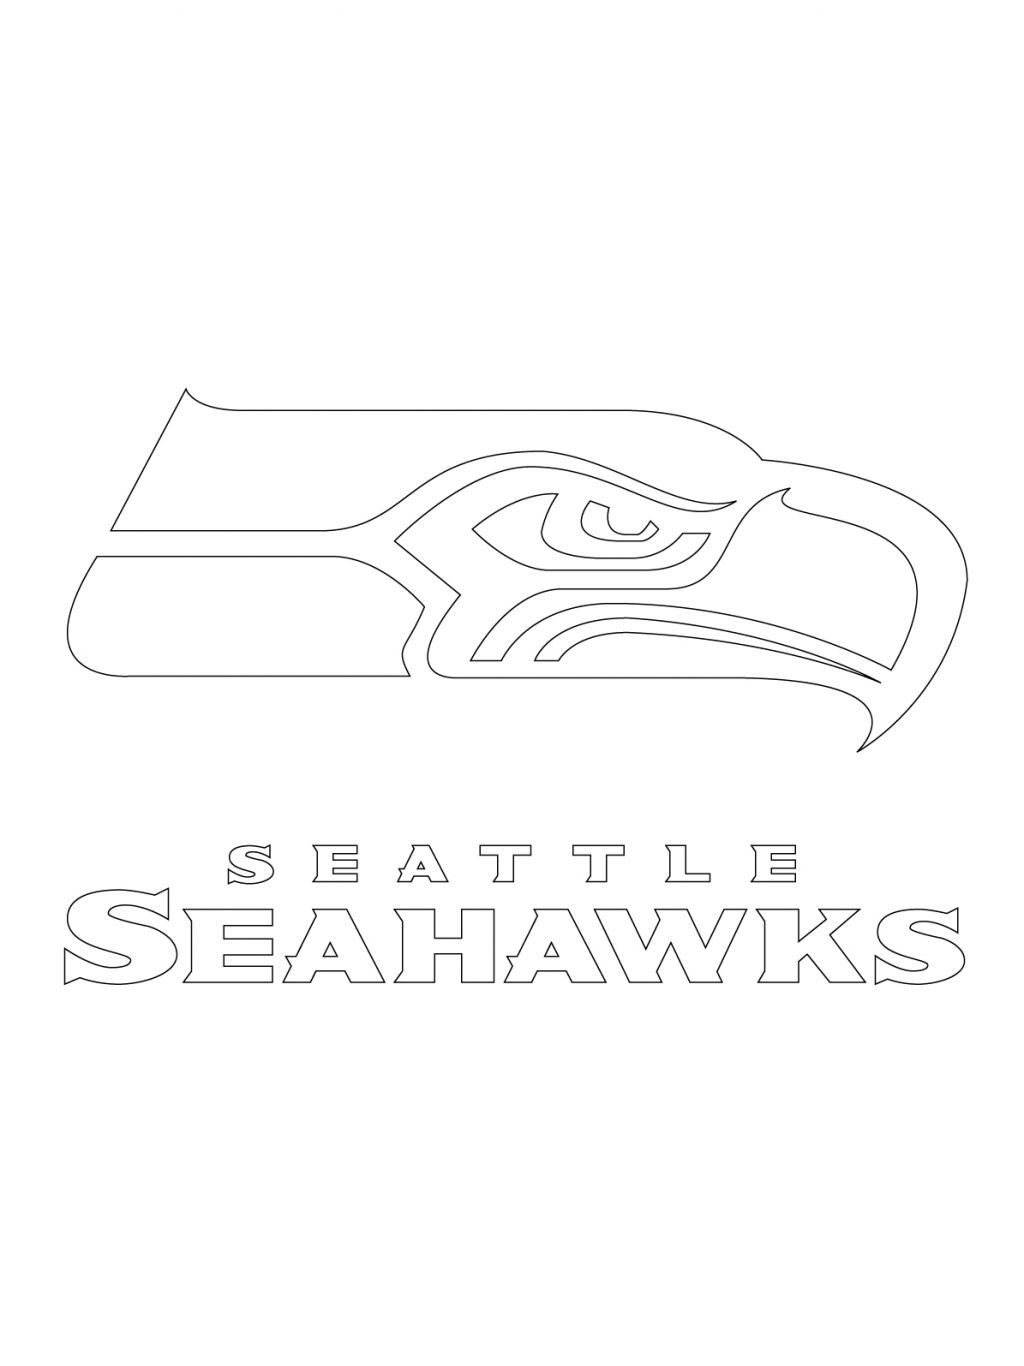 httpwwwkidskatcomimagesprintable seattle seahawks logo coloring pages jpg